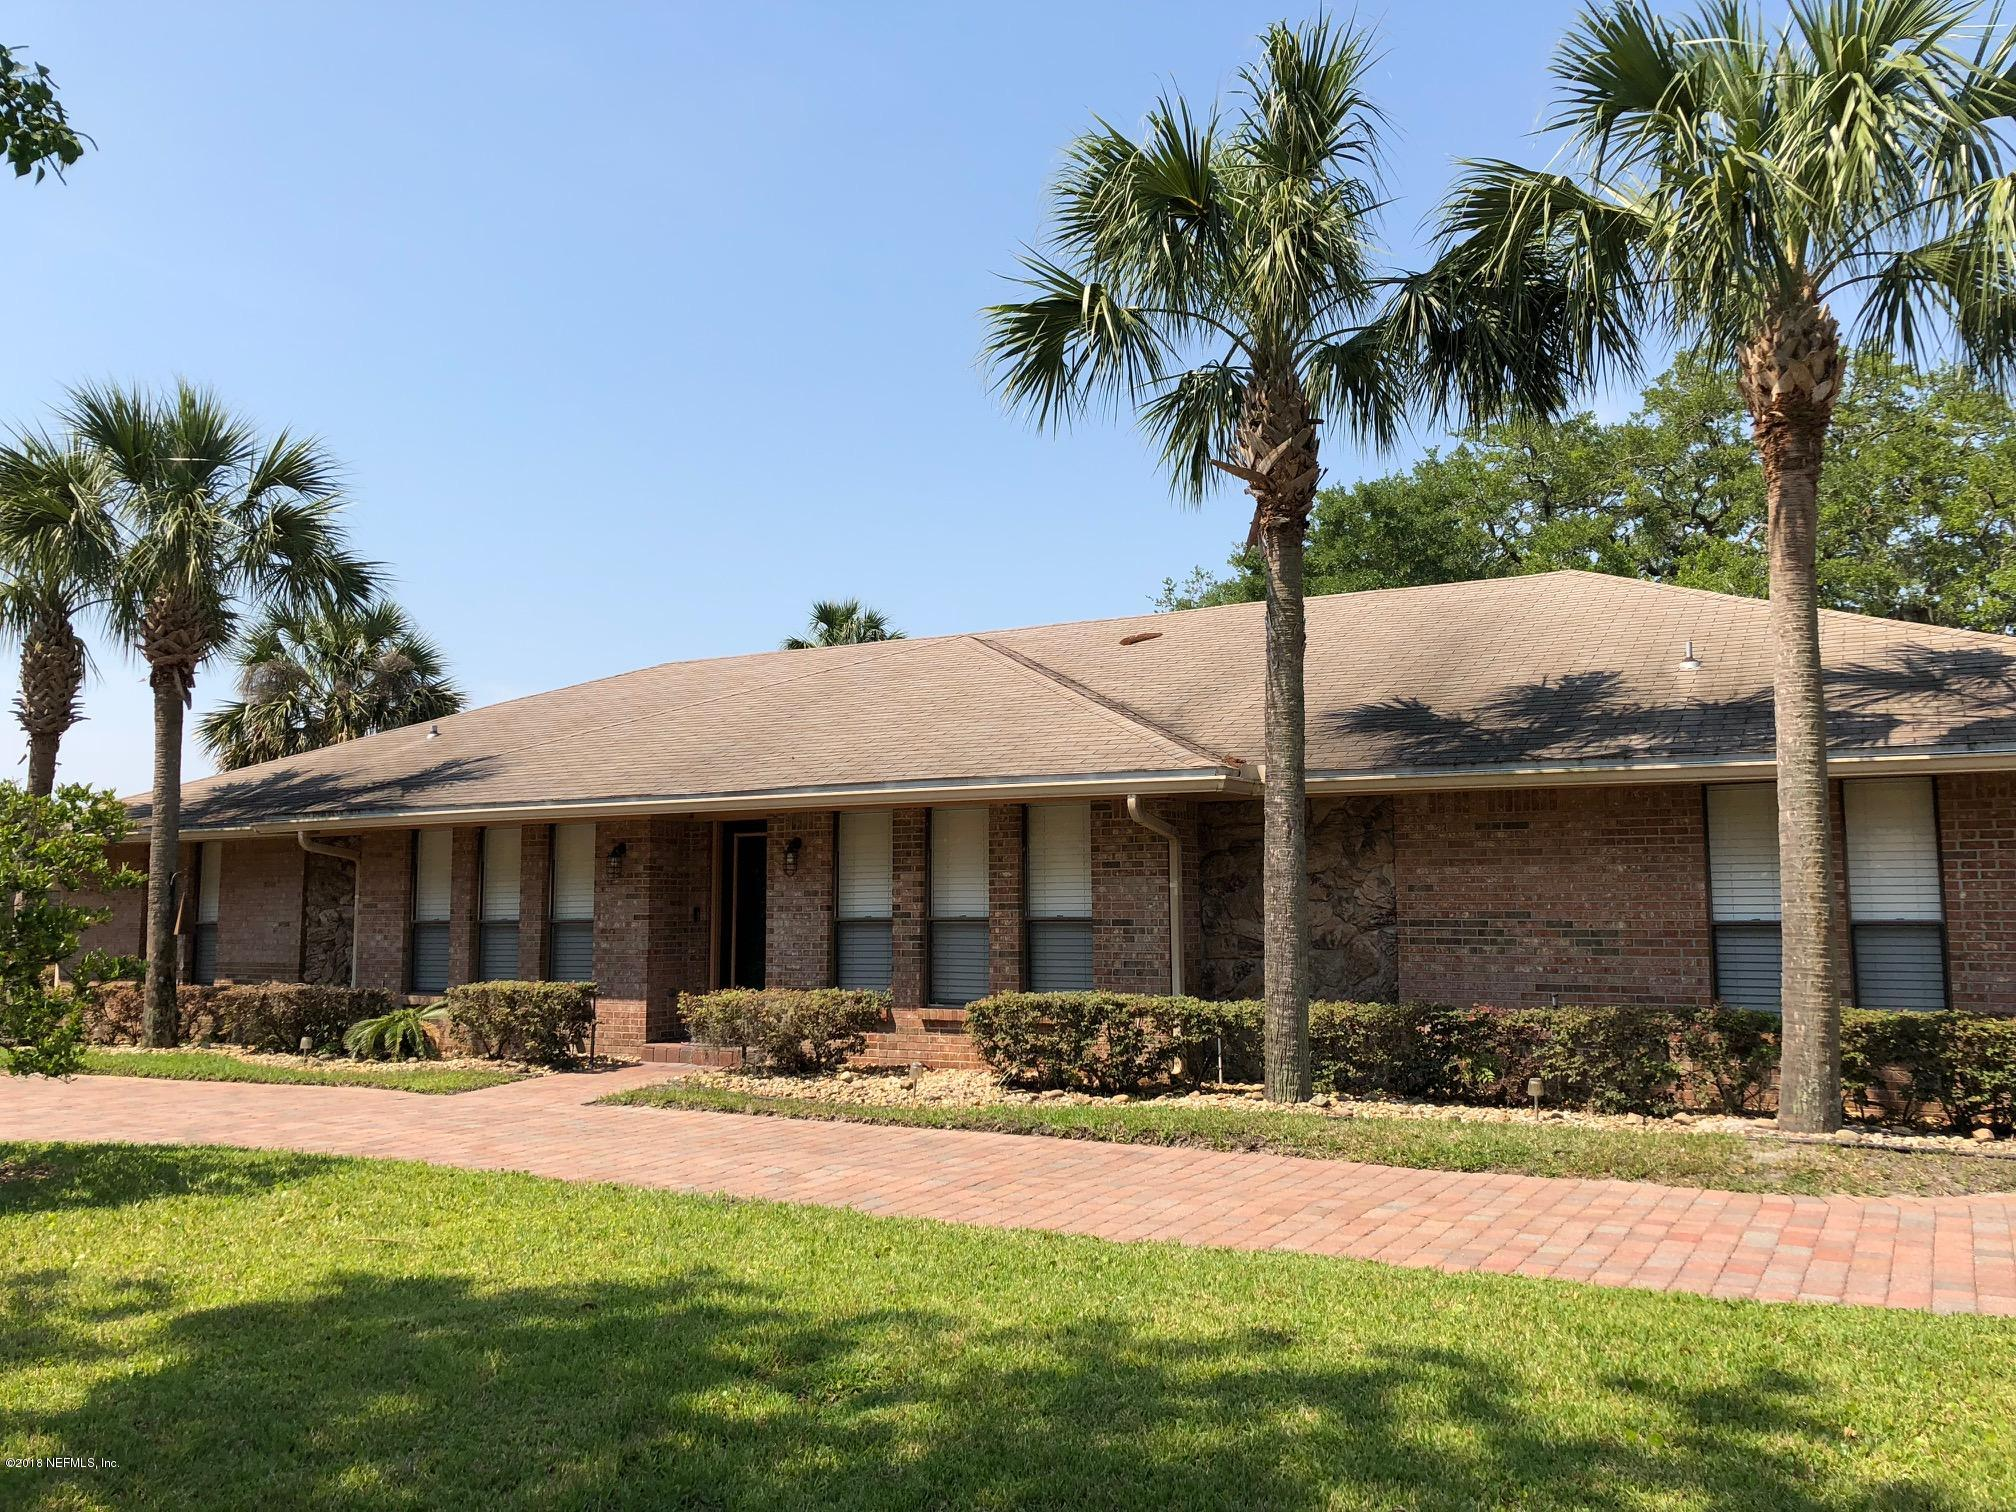 5200 RIVERTON, JACKSONVILLE, FLORIDA 32277, 5 Bedrooms Bedrooms, ,4 BathroomsBathrooms,Residential - single family,For sale,RIVERTON,965340